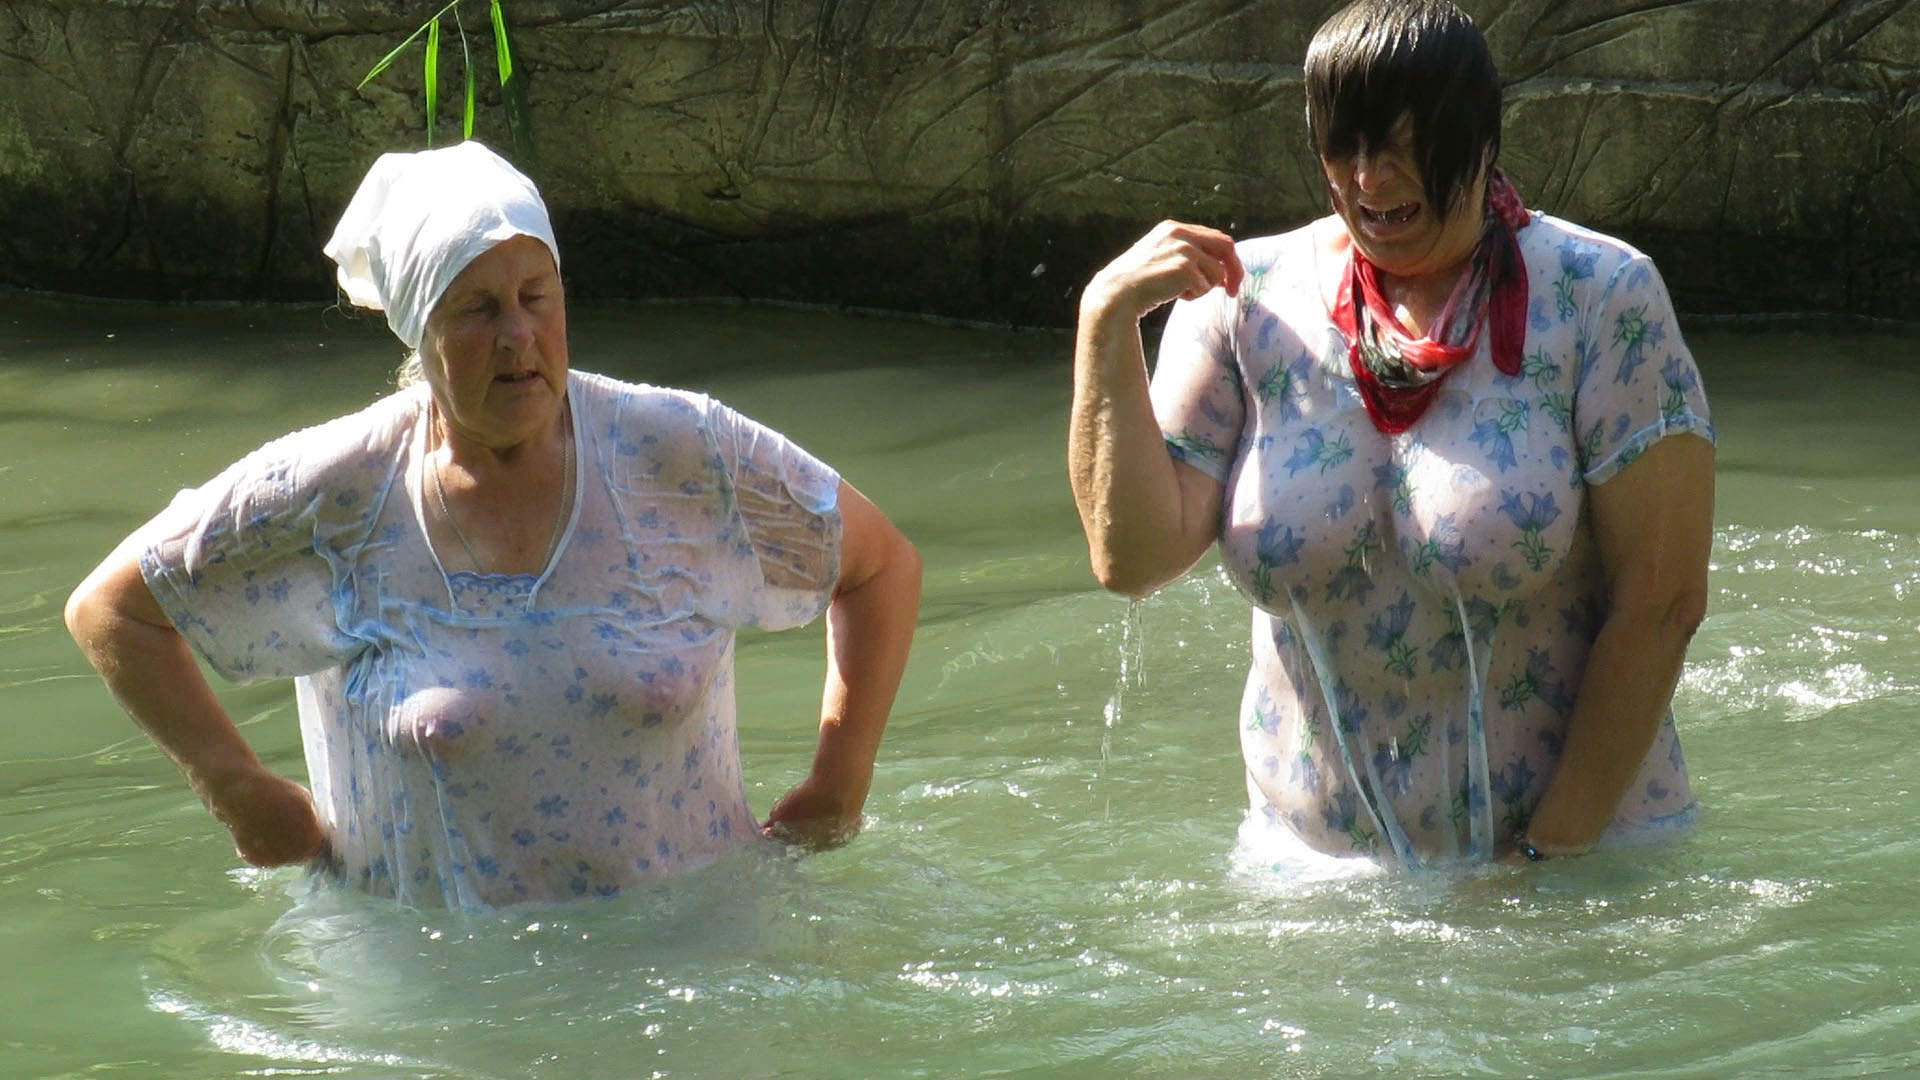 A couple of grannies plunging into cold water